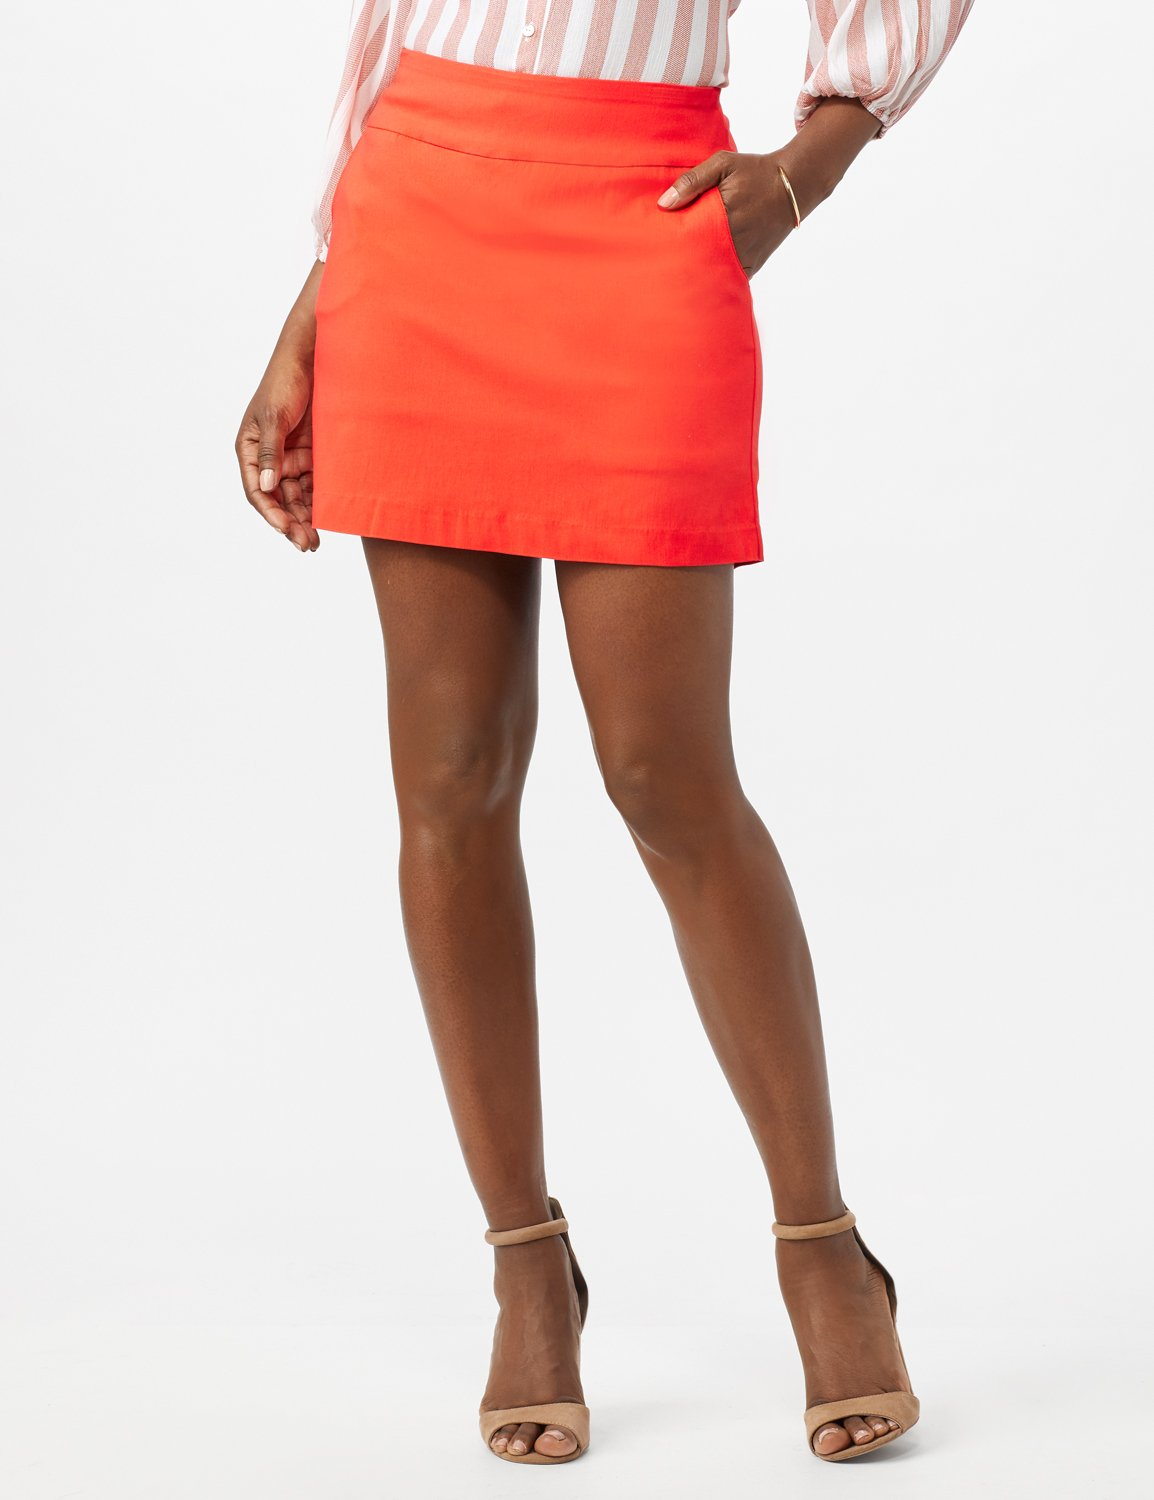 Pull On Solid Skort with Pockets -Coralicious - Front